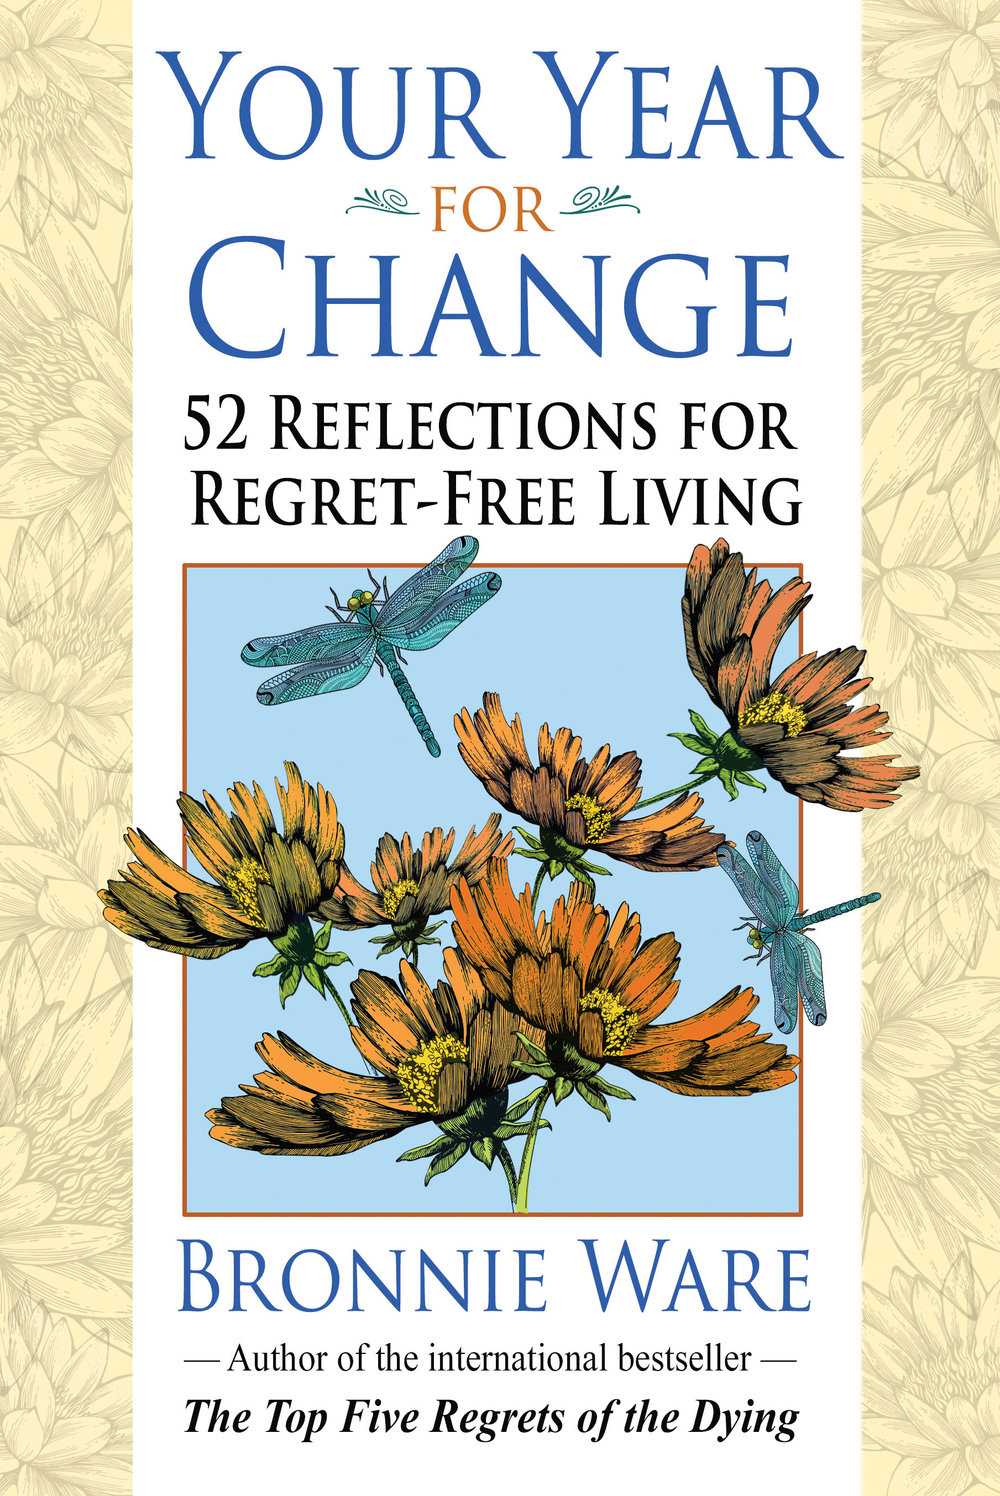 Your Year For Change is a collection of stories and observations that open the reader's eyes to new perspectives on topics such as nature, courage, happiness,and more.